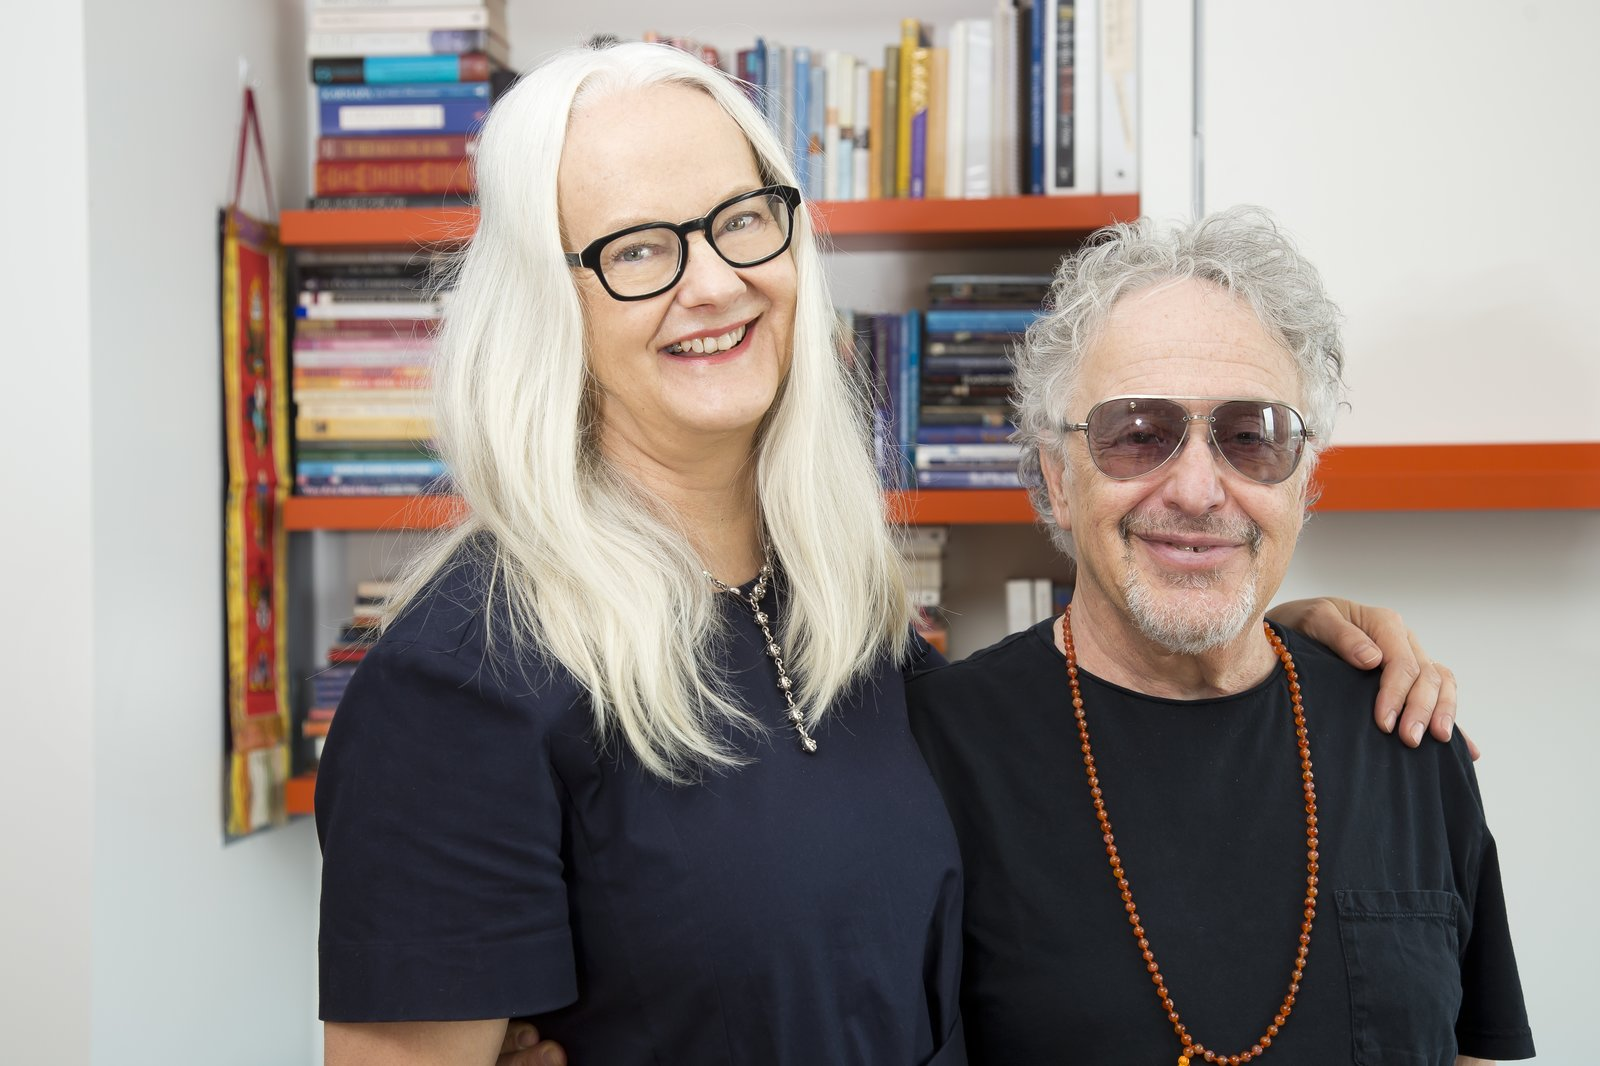 Annette is an agent for cartoon writers and creators, directors, and producers. Alan is a television and film producer, writer, and band manager, best known for the 1970s sitcom Welcome Back, Kotter. Thanks to transforming furniture from Resource Furniture and their flexible schedules, both enjoy home offices in their highly efficient apartment.  Photo 2 of 6 in Two Film Industry Veterans Flip the Script With a Suburb-to-City Move